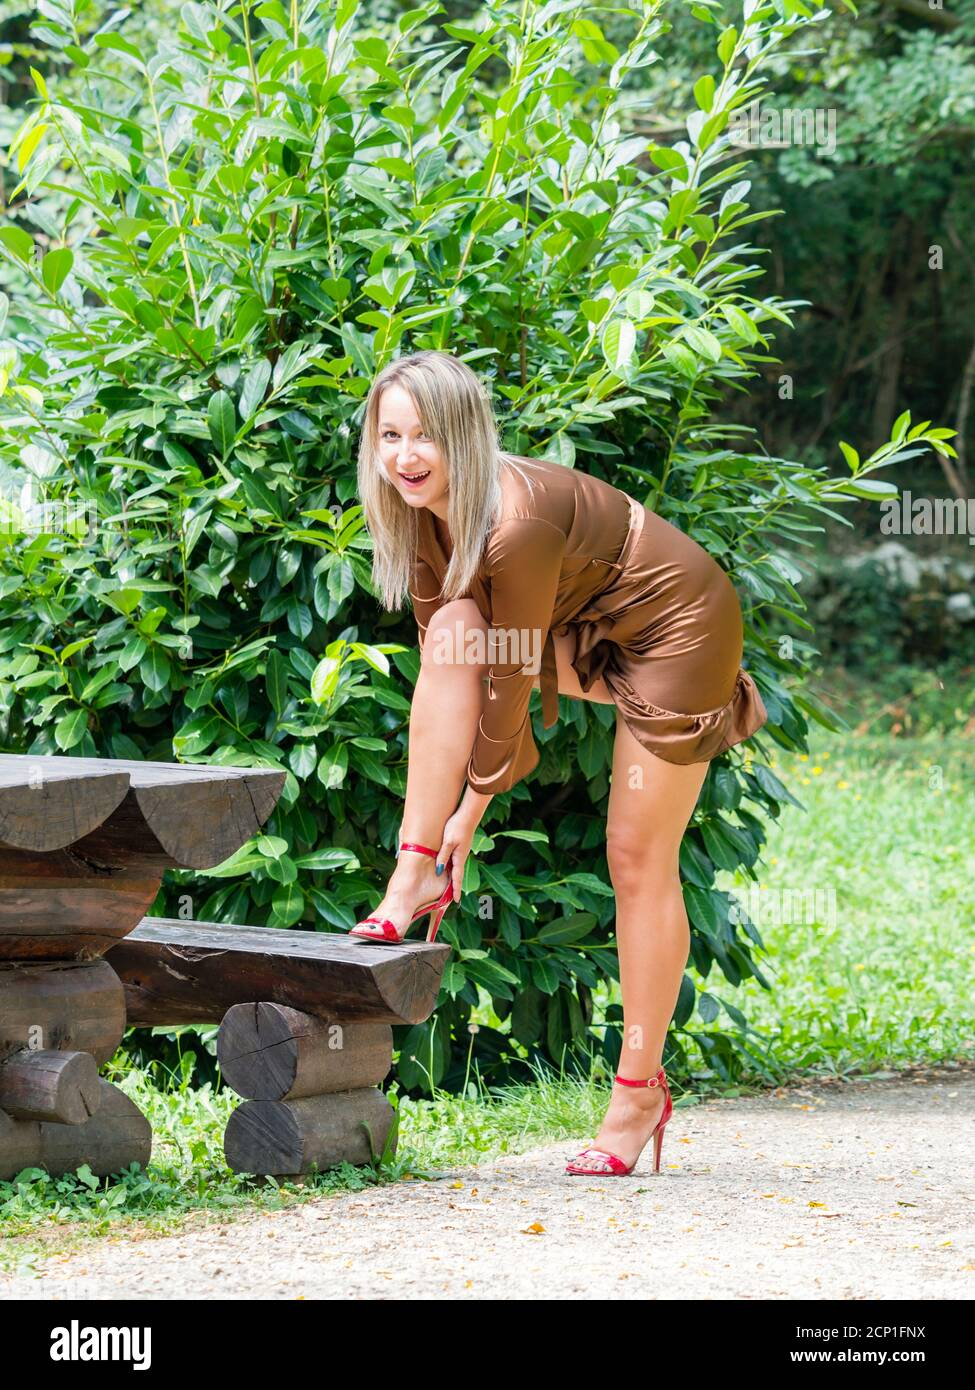 Stiletto heels legs young woman buckling buckle tying Red high-heels tie laces standing in park raising leg on wooden bench happy to see smiling smile Stock Photo